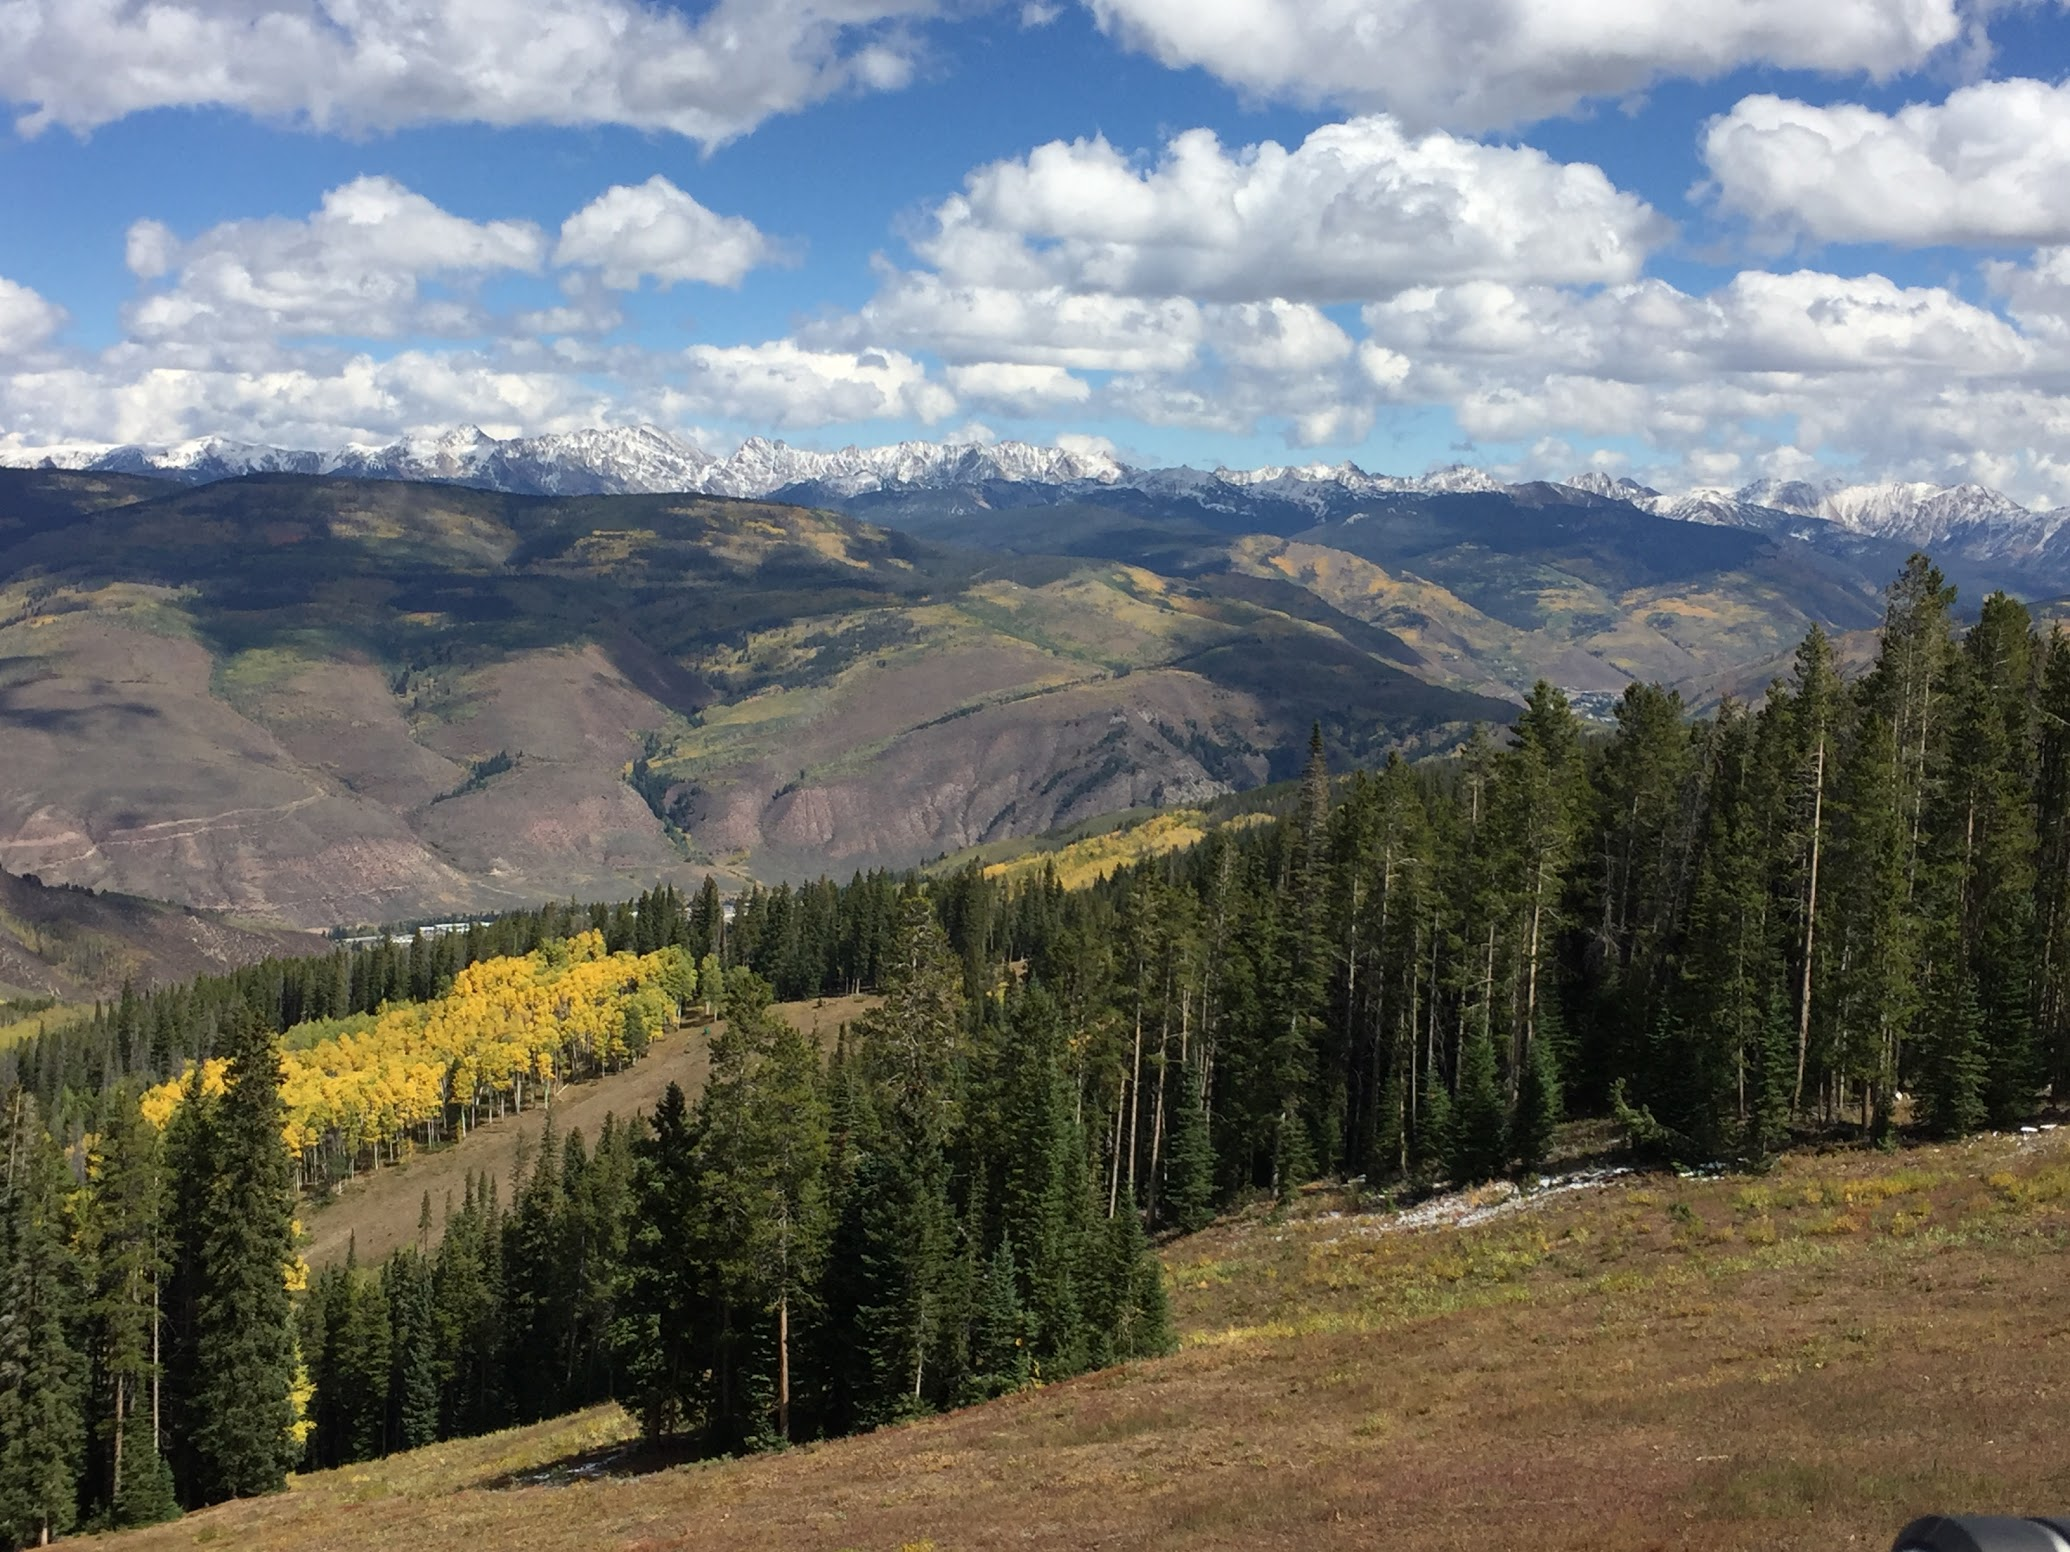 View from the Chair lift in Beaver Creek in Early Fall.